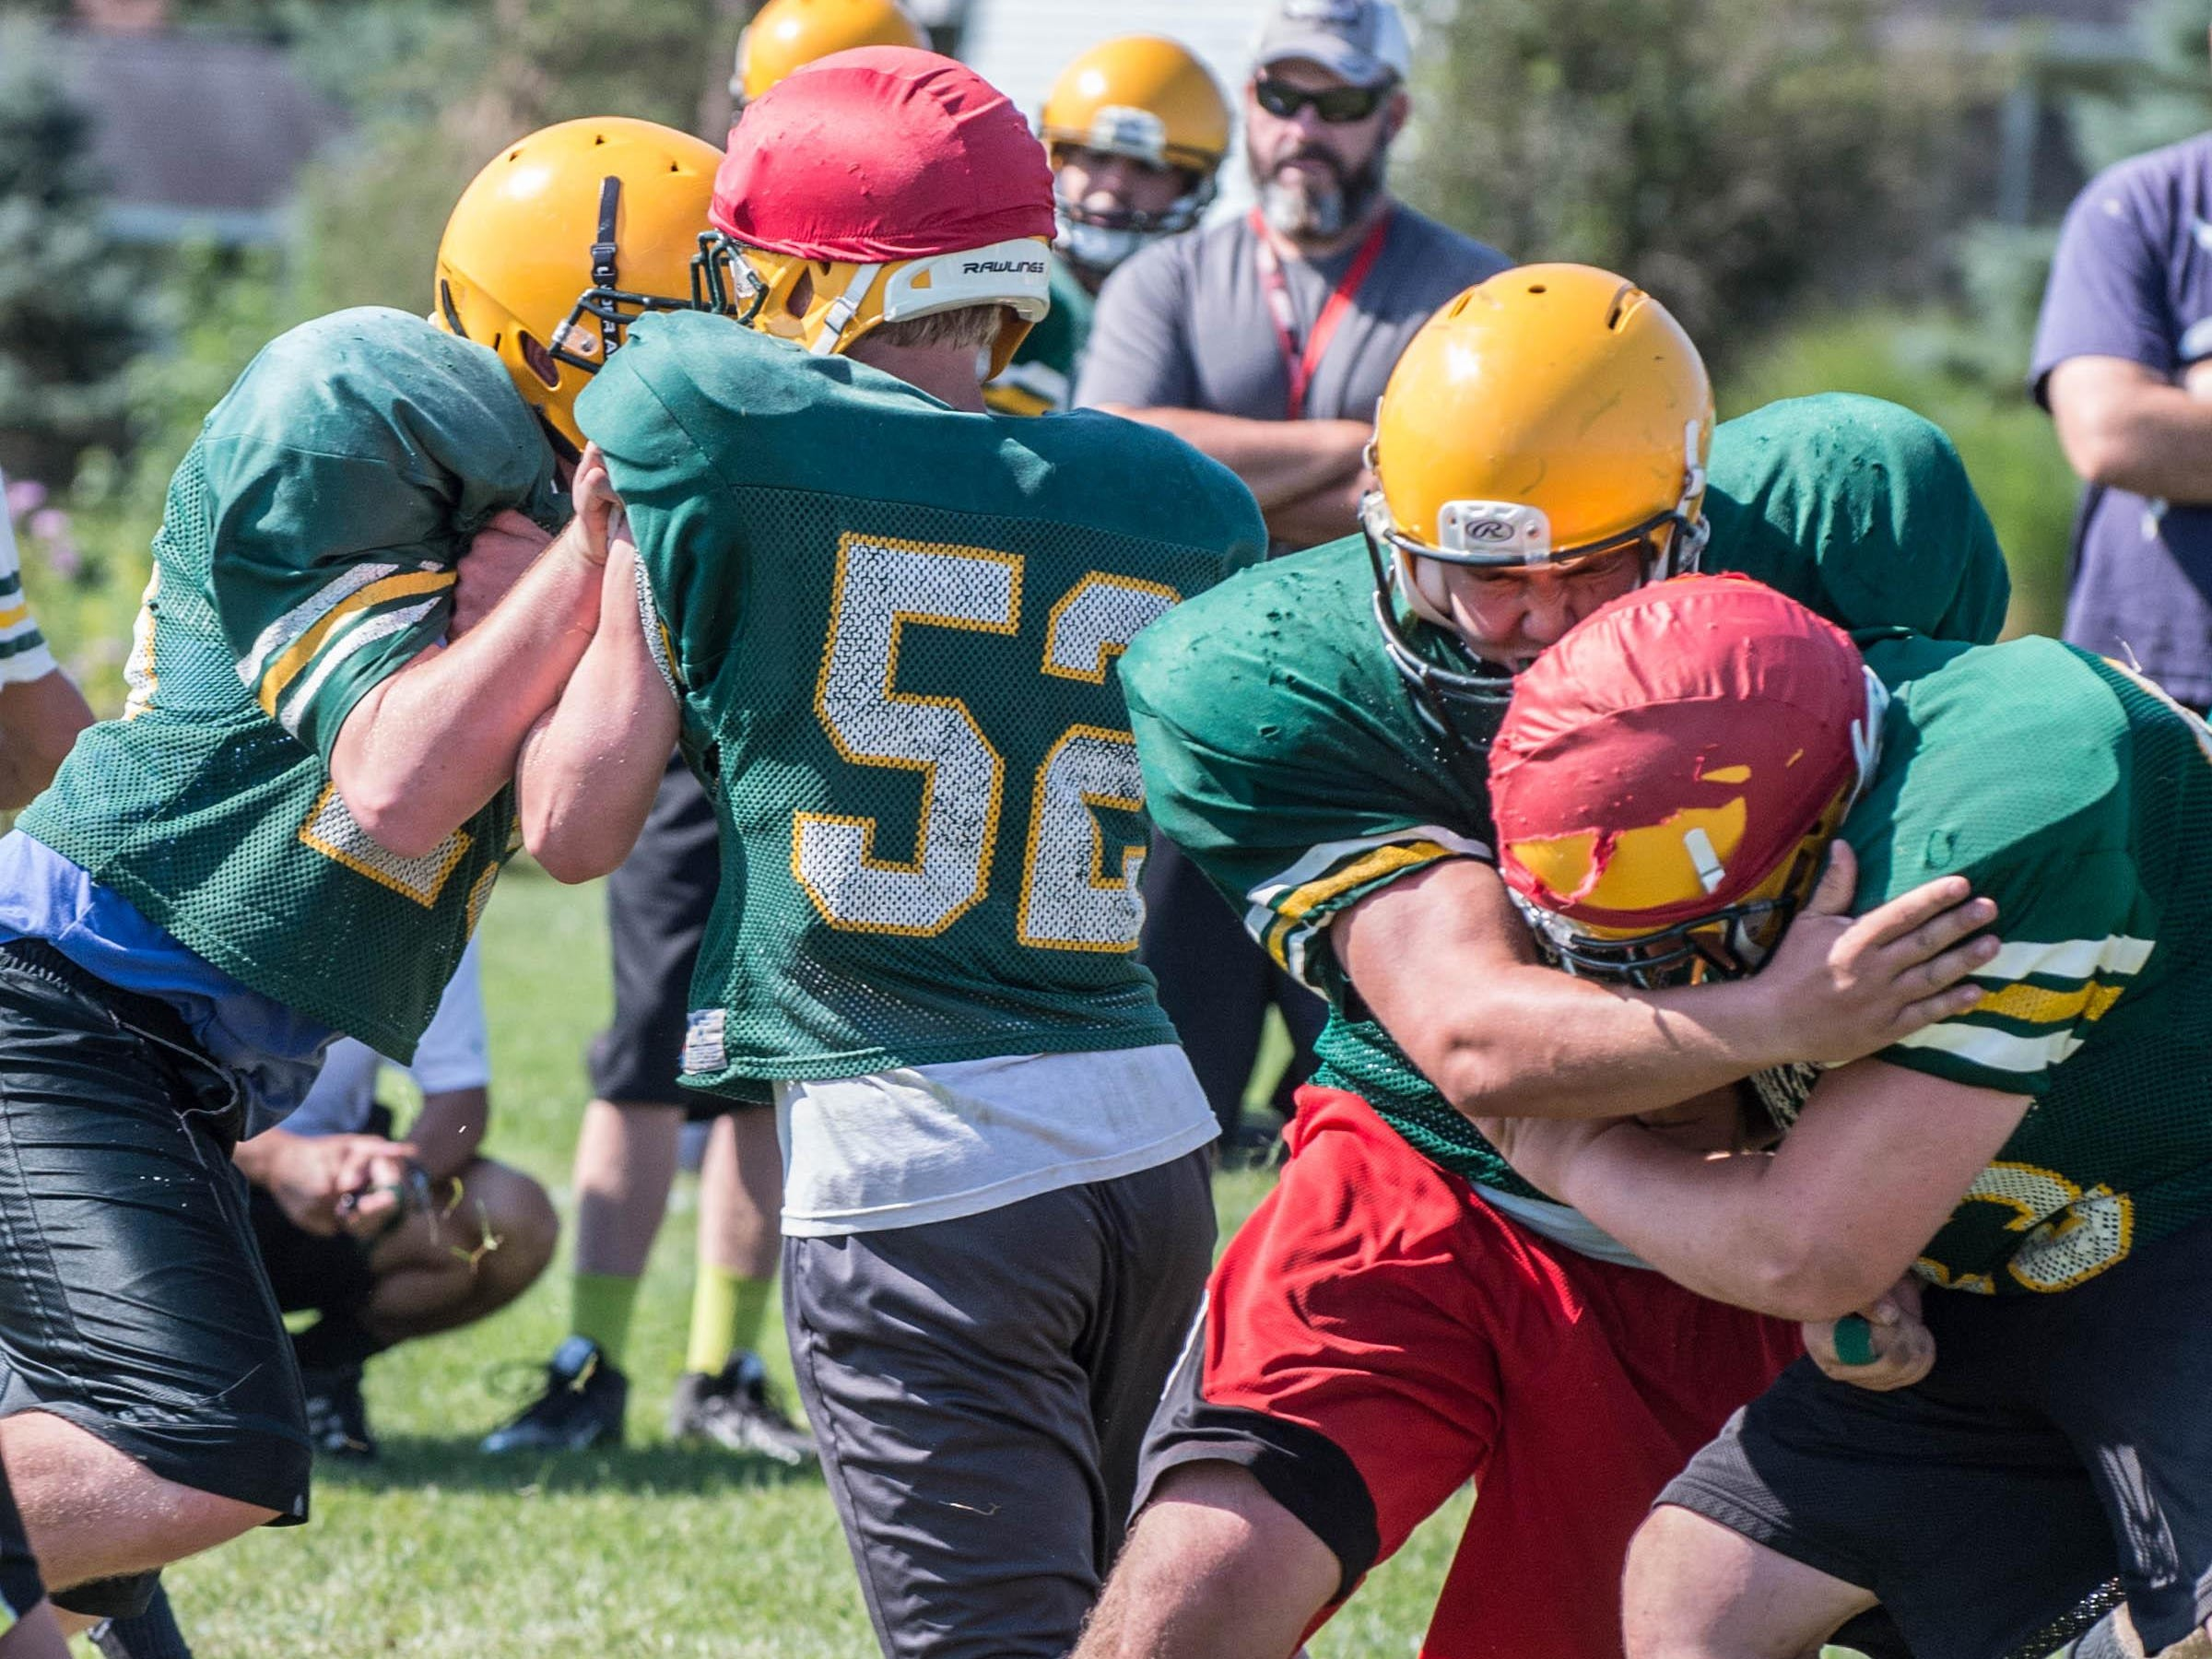 First day of practice with full pads for Pennfield High School football team.